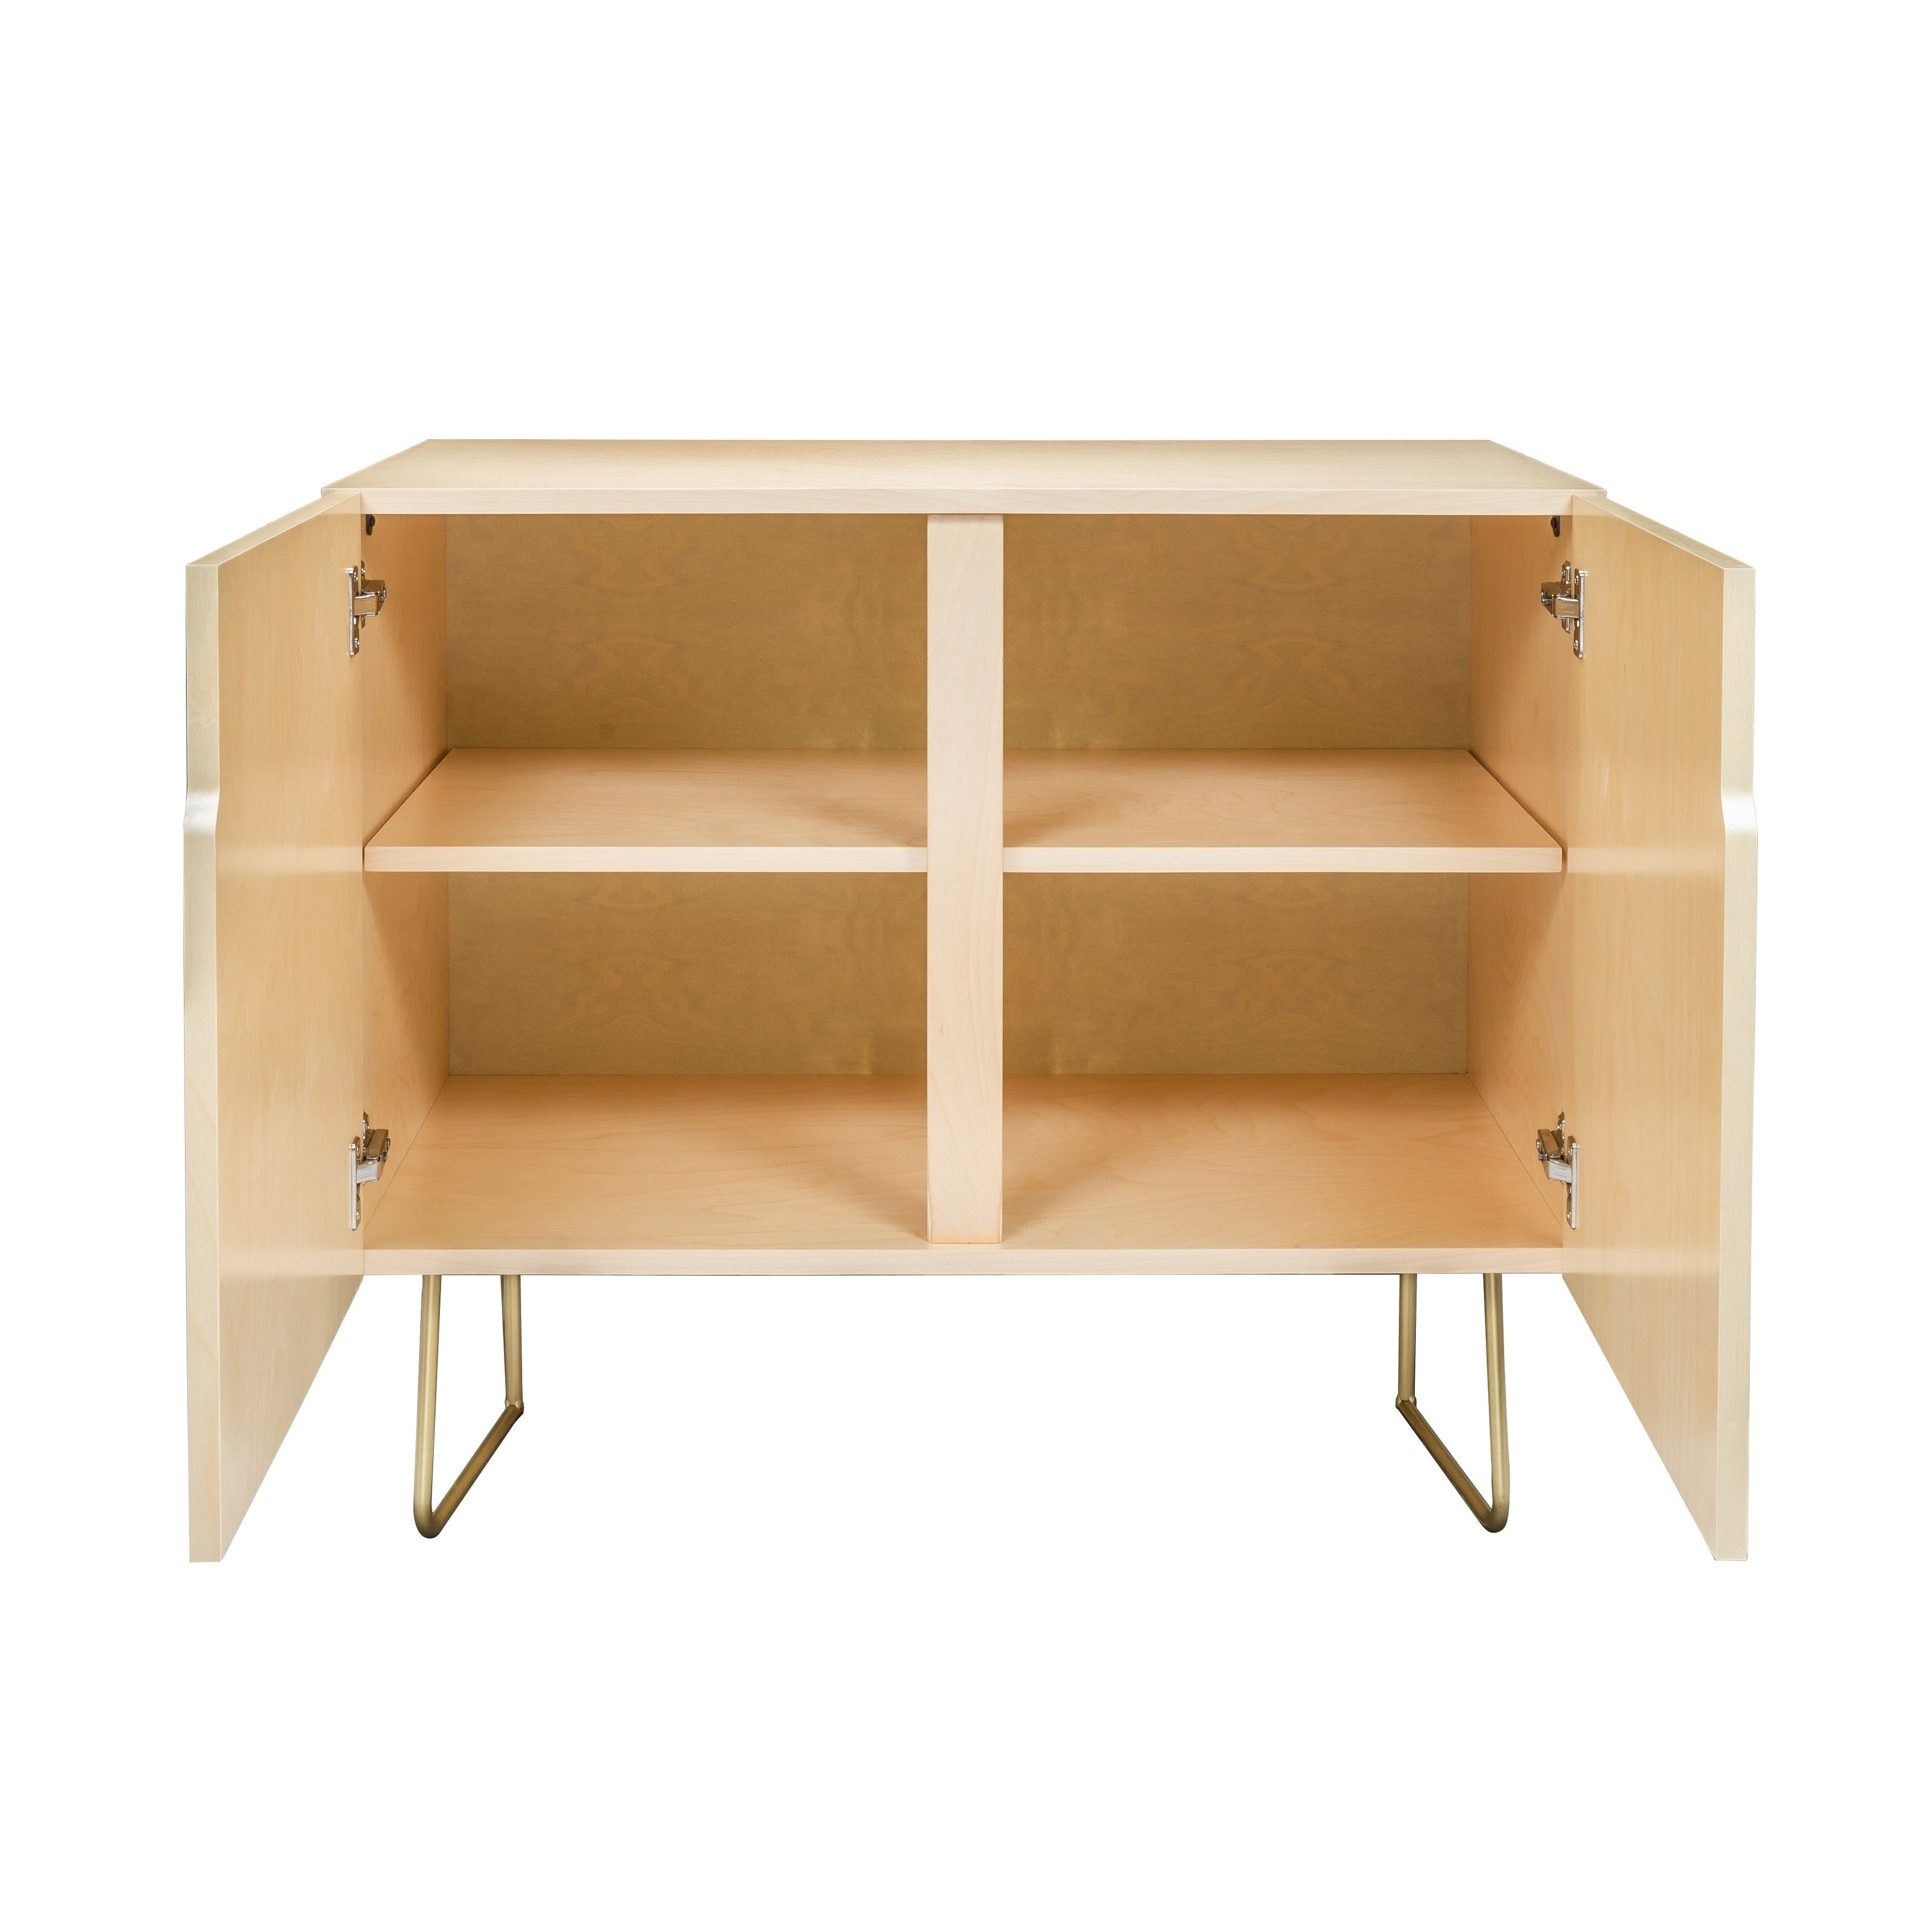 Deny Designs Colorful Leaves Credenza (Birch Or Walnut, 2 Leg Options) Inside Colorful Leaves Credenzas (Photo 9 of 30)